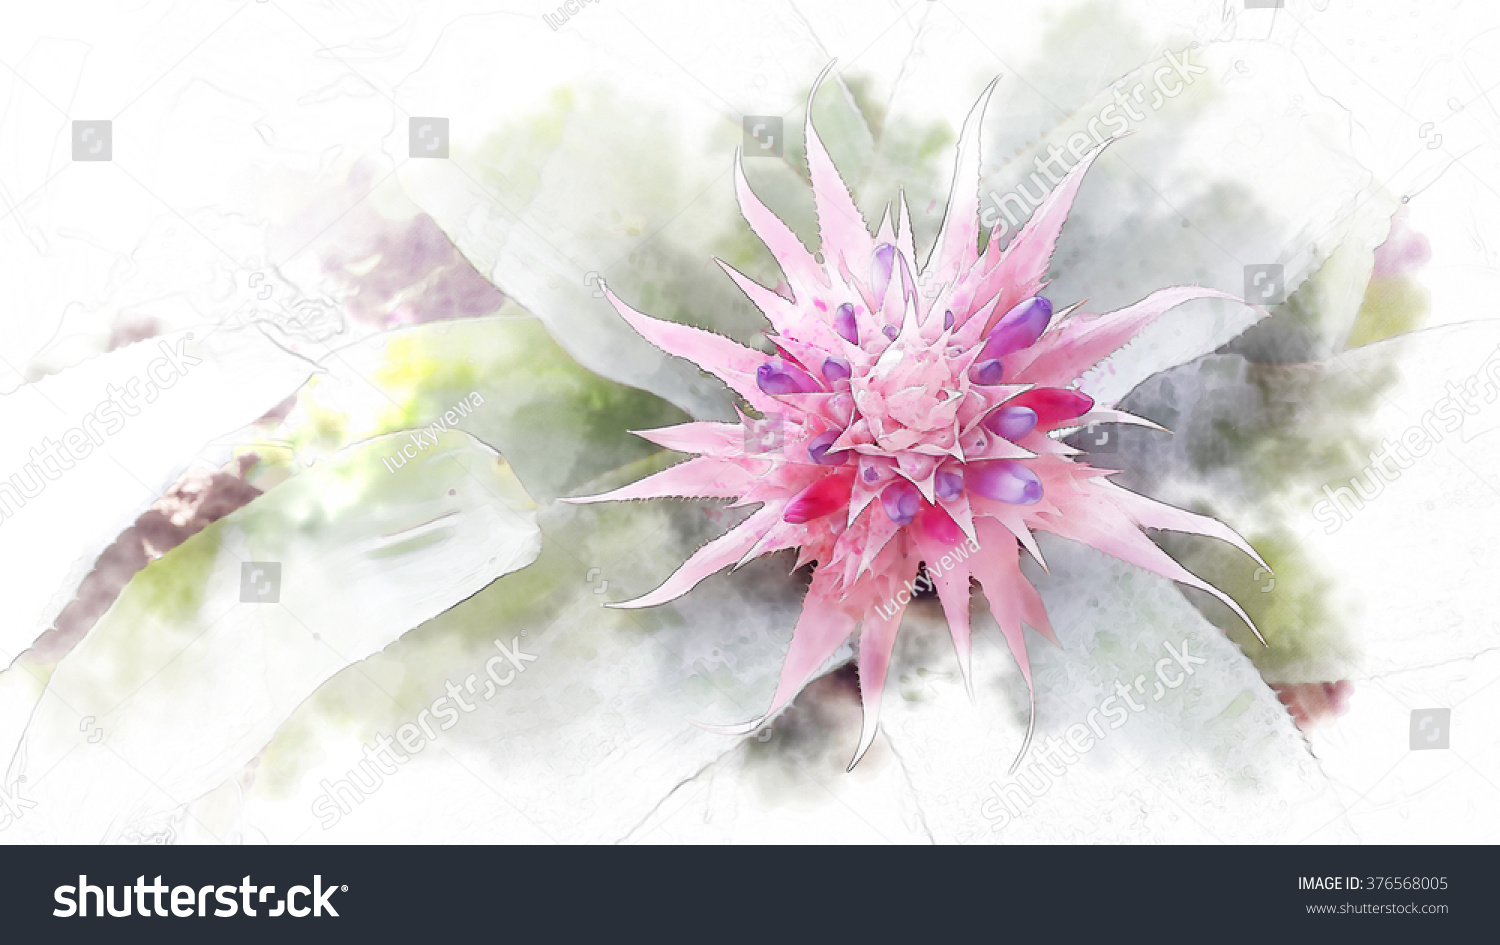 Bromeliad Pink Flower Watercolor Techniques Stock Illustration